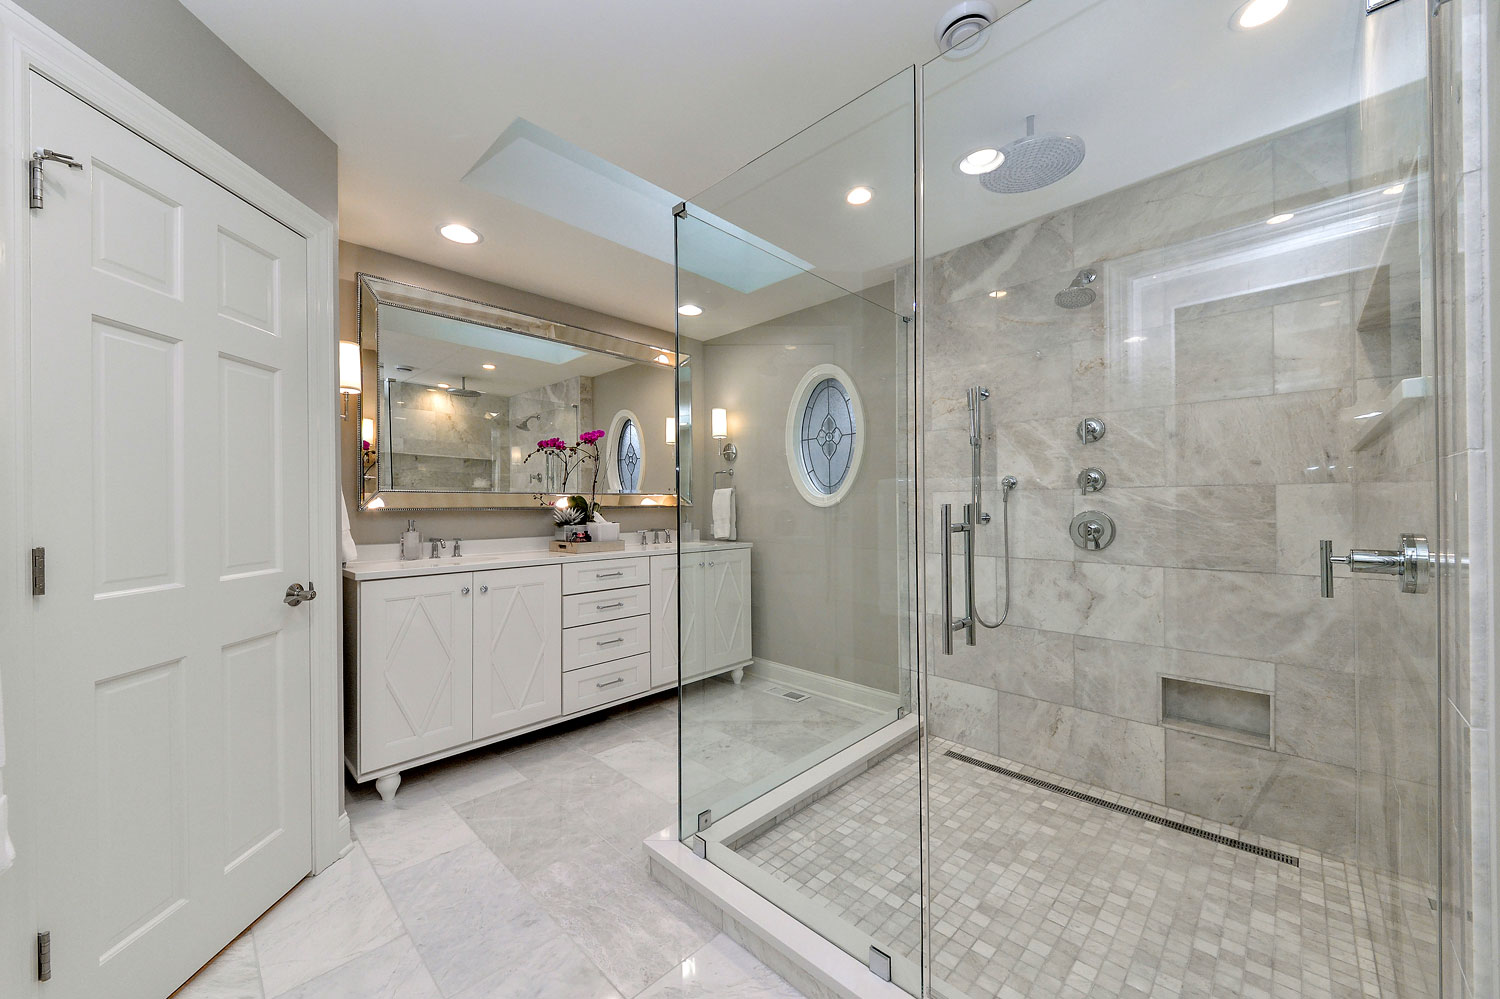 Bobby lisa 39 s master bathroom remodel pictures home for Kitchen bathroom renovations